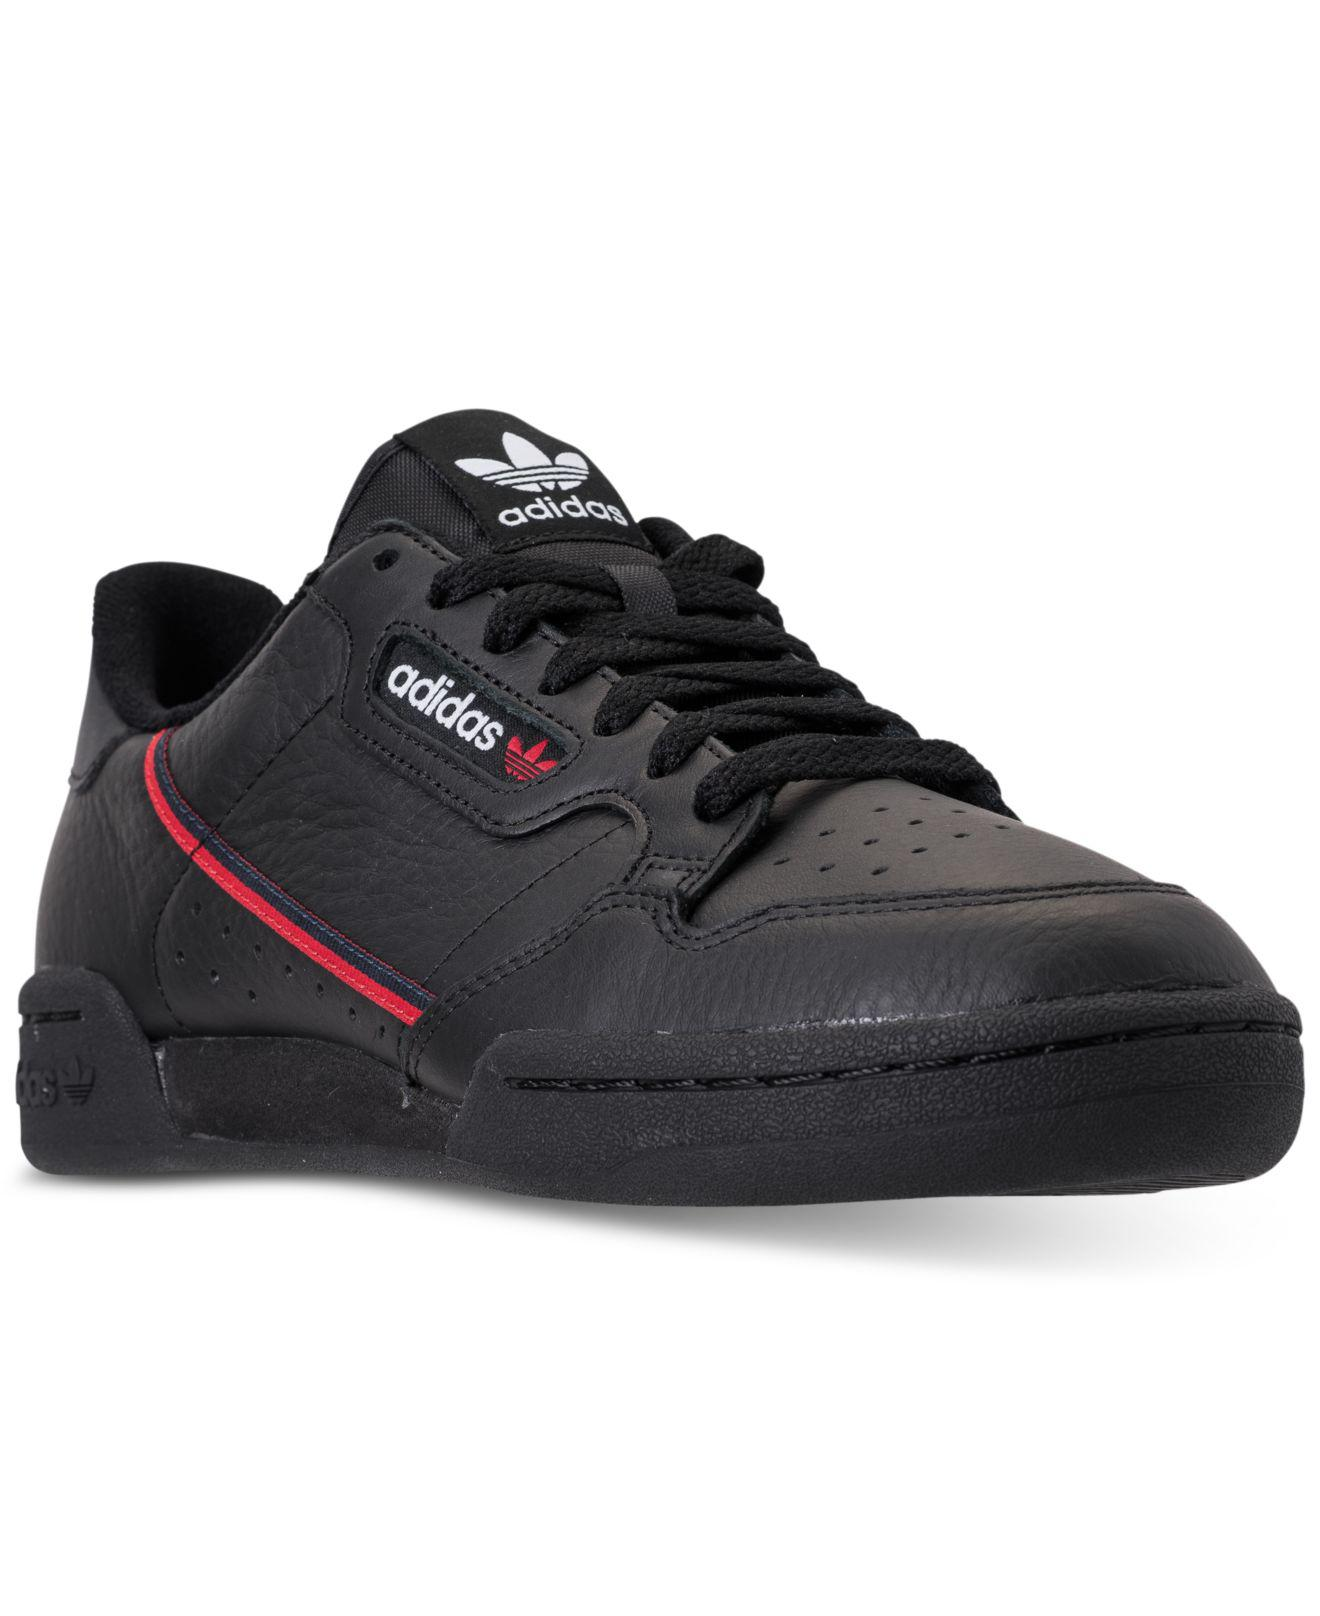 43275553b322 Lyst - adidas Men s Continental 80 Leather Low-top Sneakers in Black ...